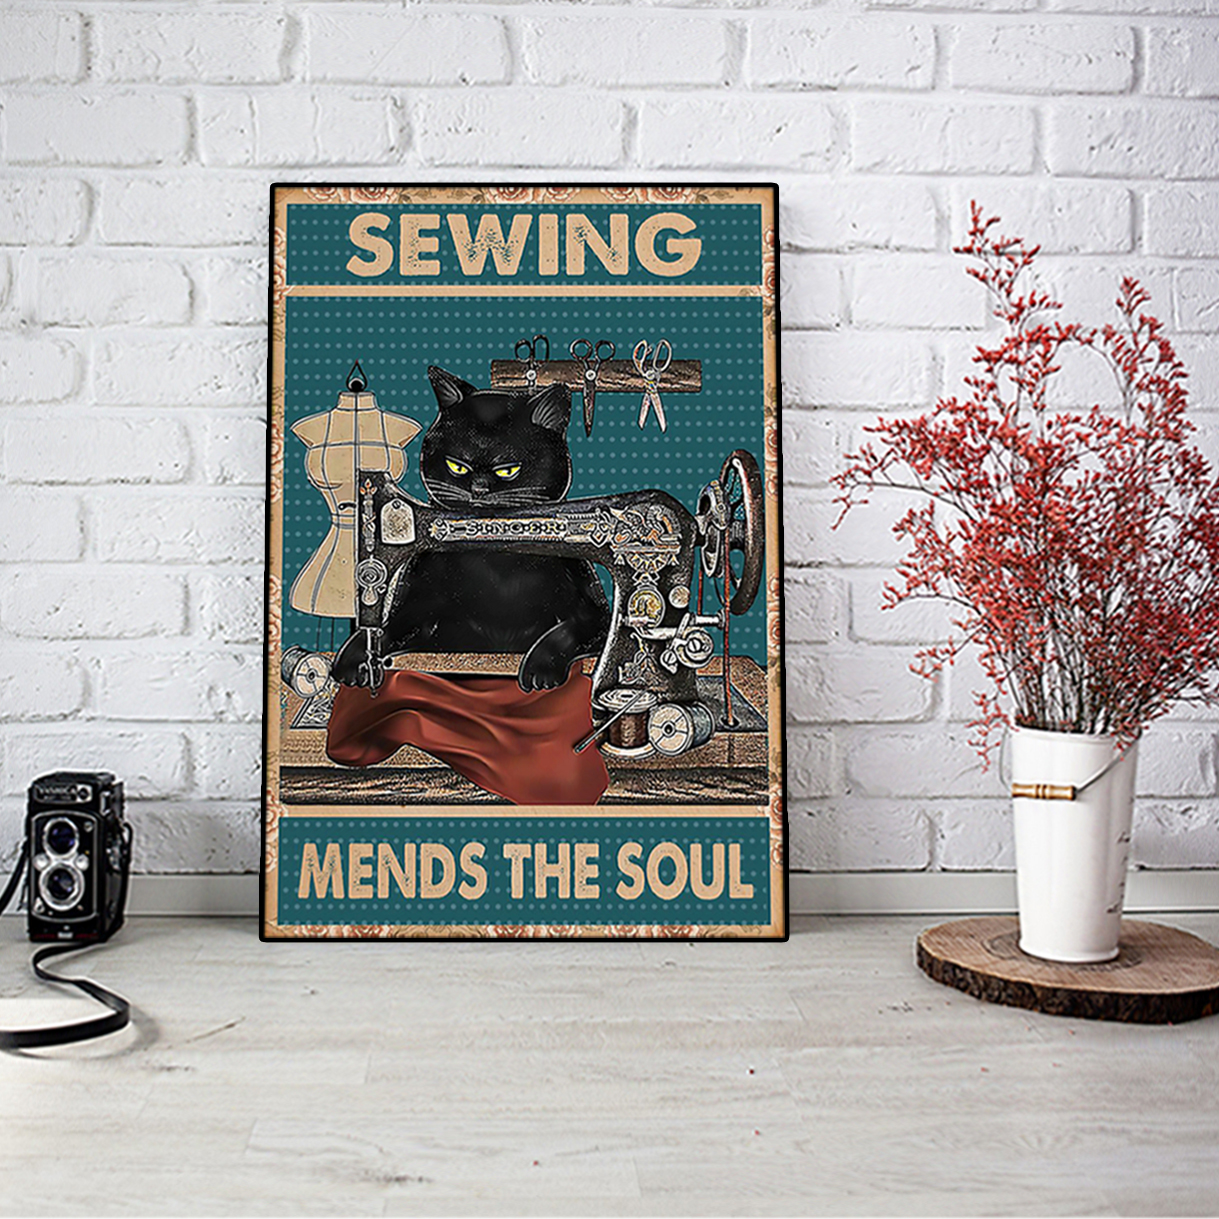 Cat sewing mends the soul poster A1